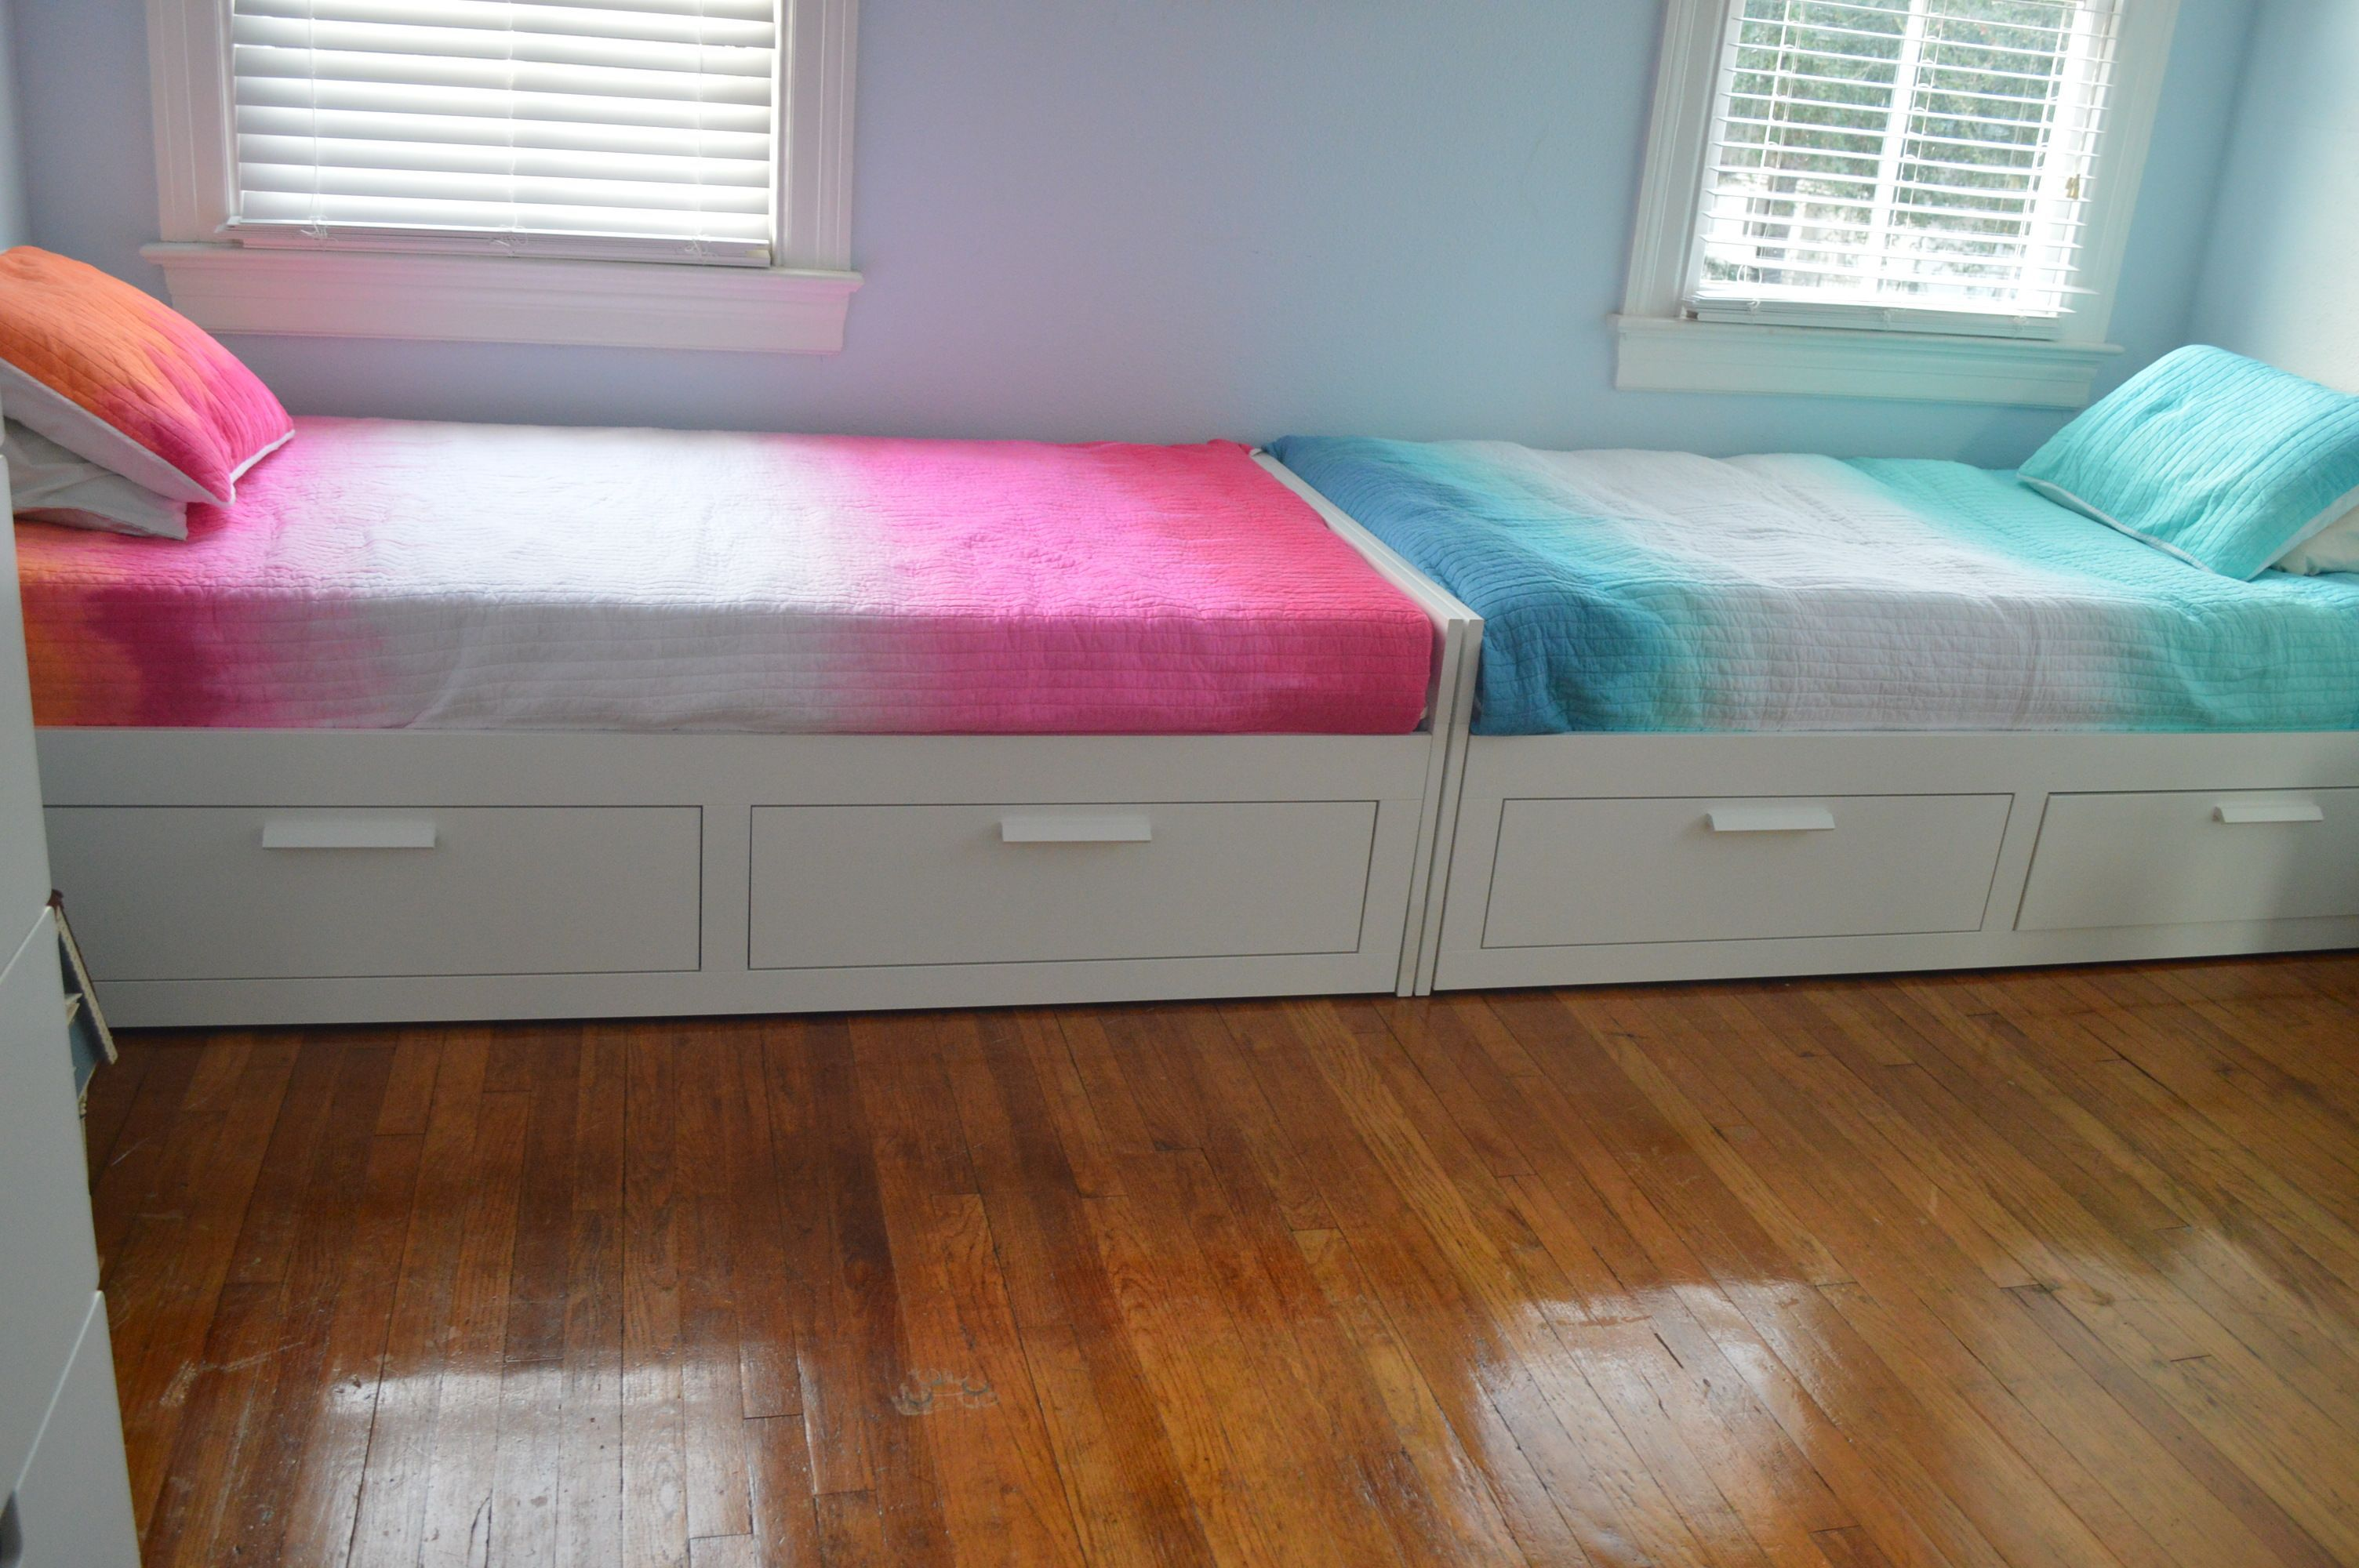 Best Brimnes Twin Beds From Ikea Cynthia Rowley Ombre Bedspreads From Marshall S Ikea Kids Room 400 x 300